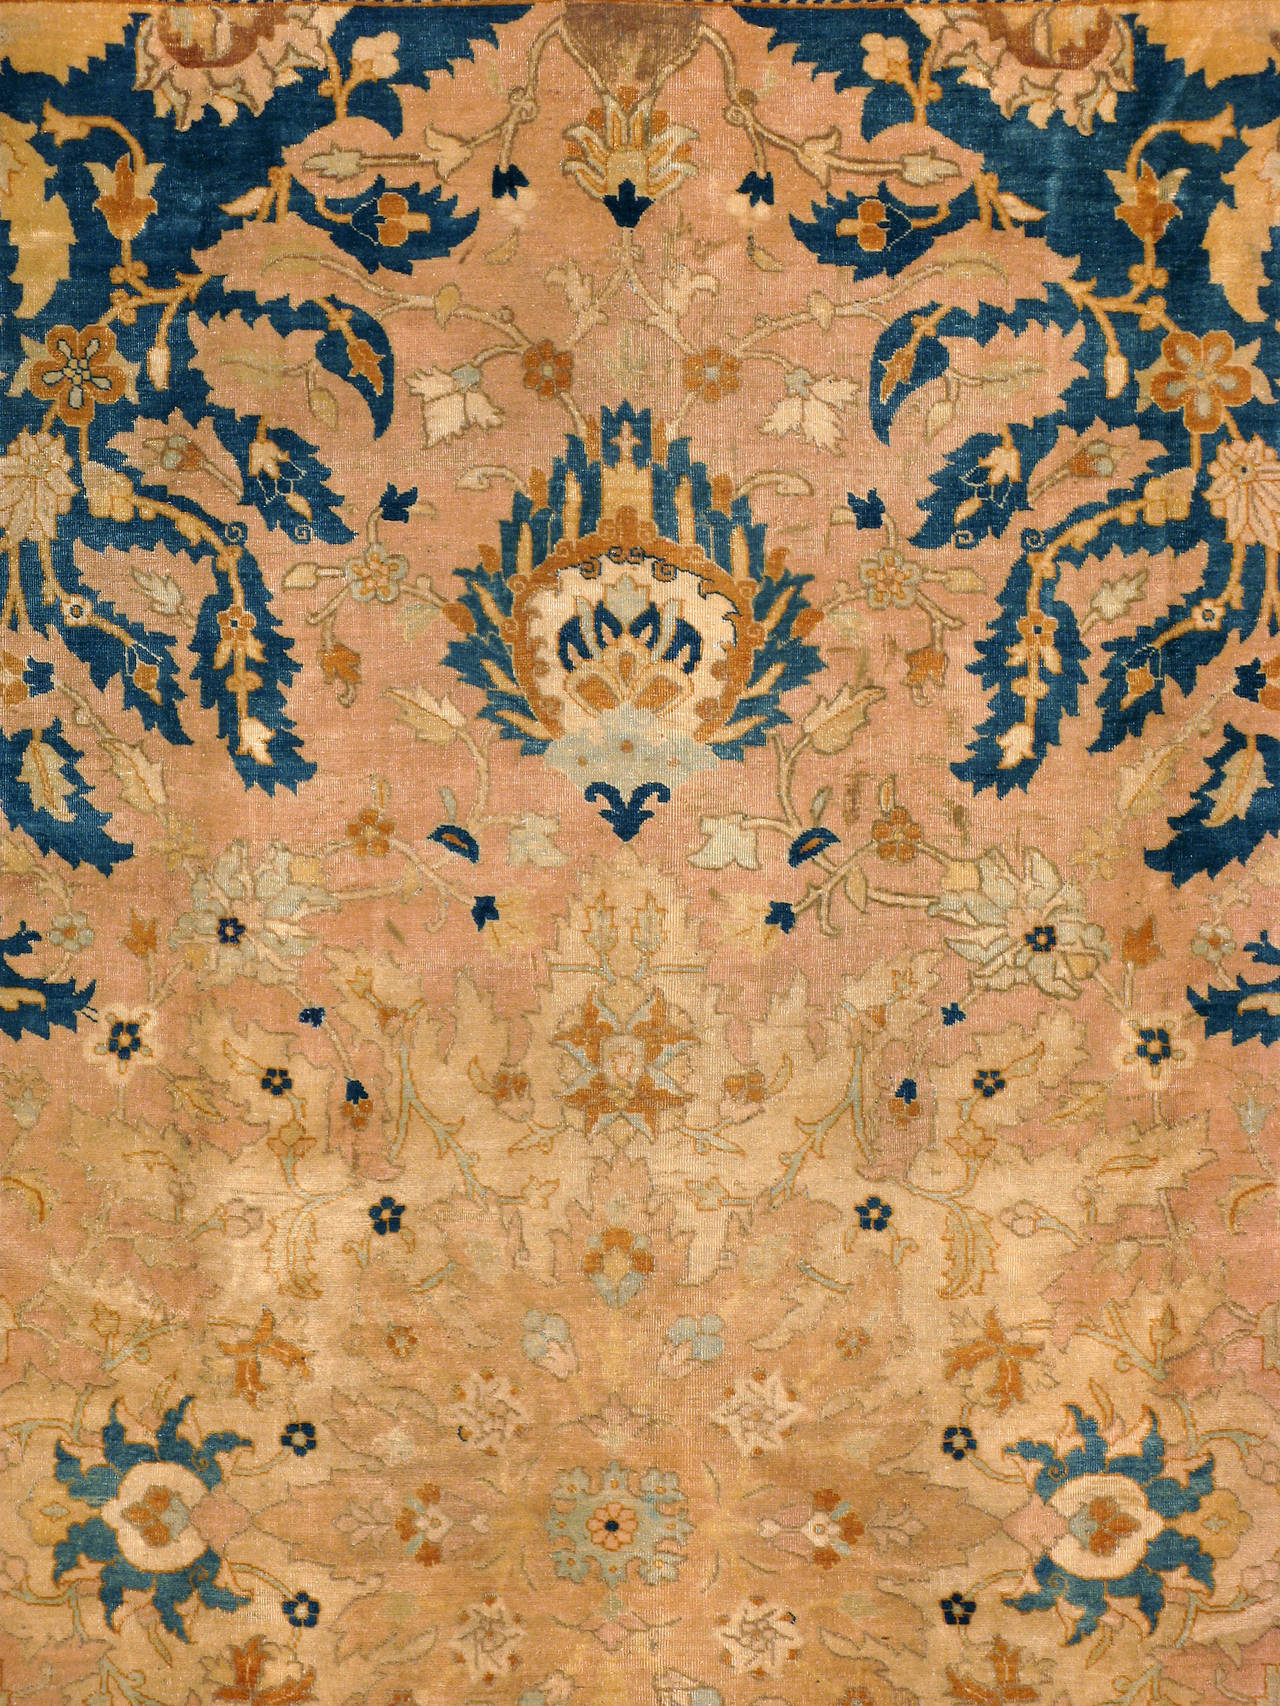 A Persian Tabriz carpet from the first quarter of the 20th century. Since the 19th century, Iran started exporting artisan carpets around the world, especially to Europe. Artists used one of the three versions of vertical looms later referred to as